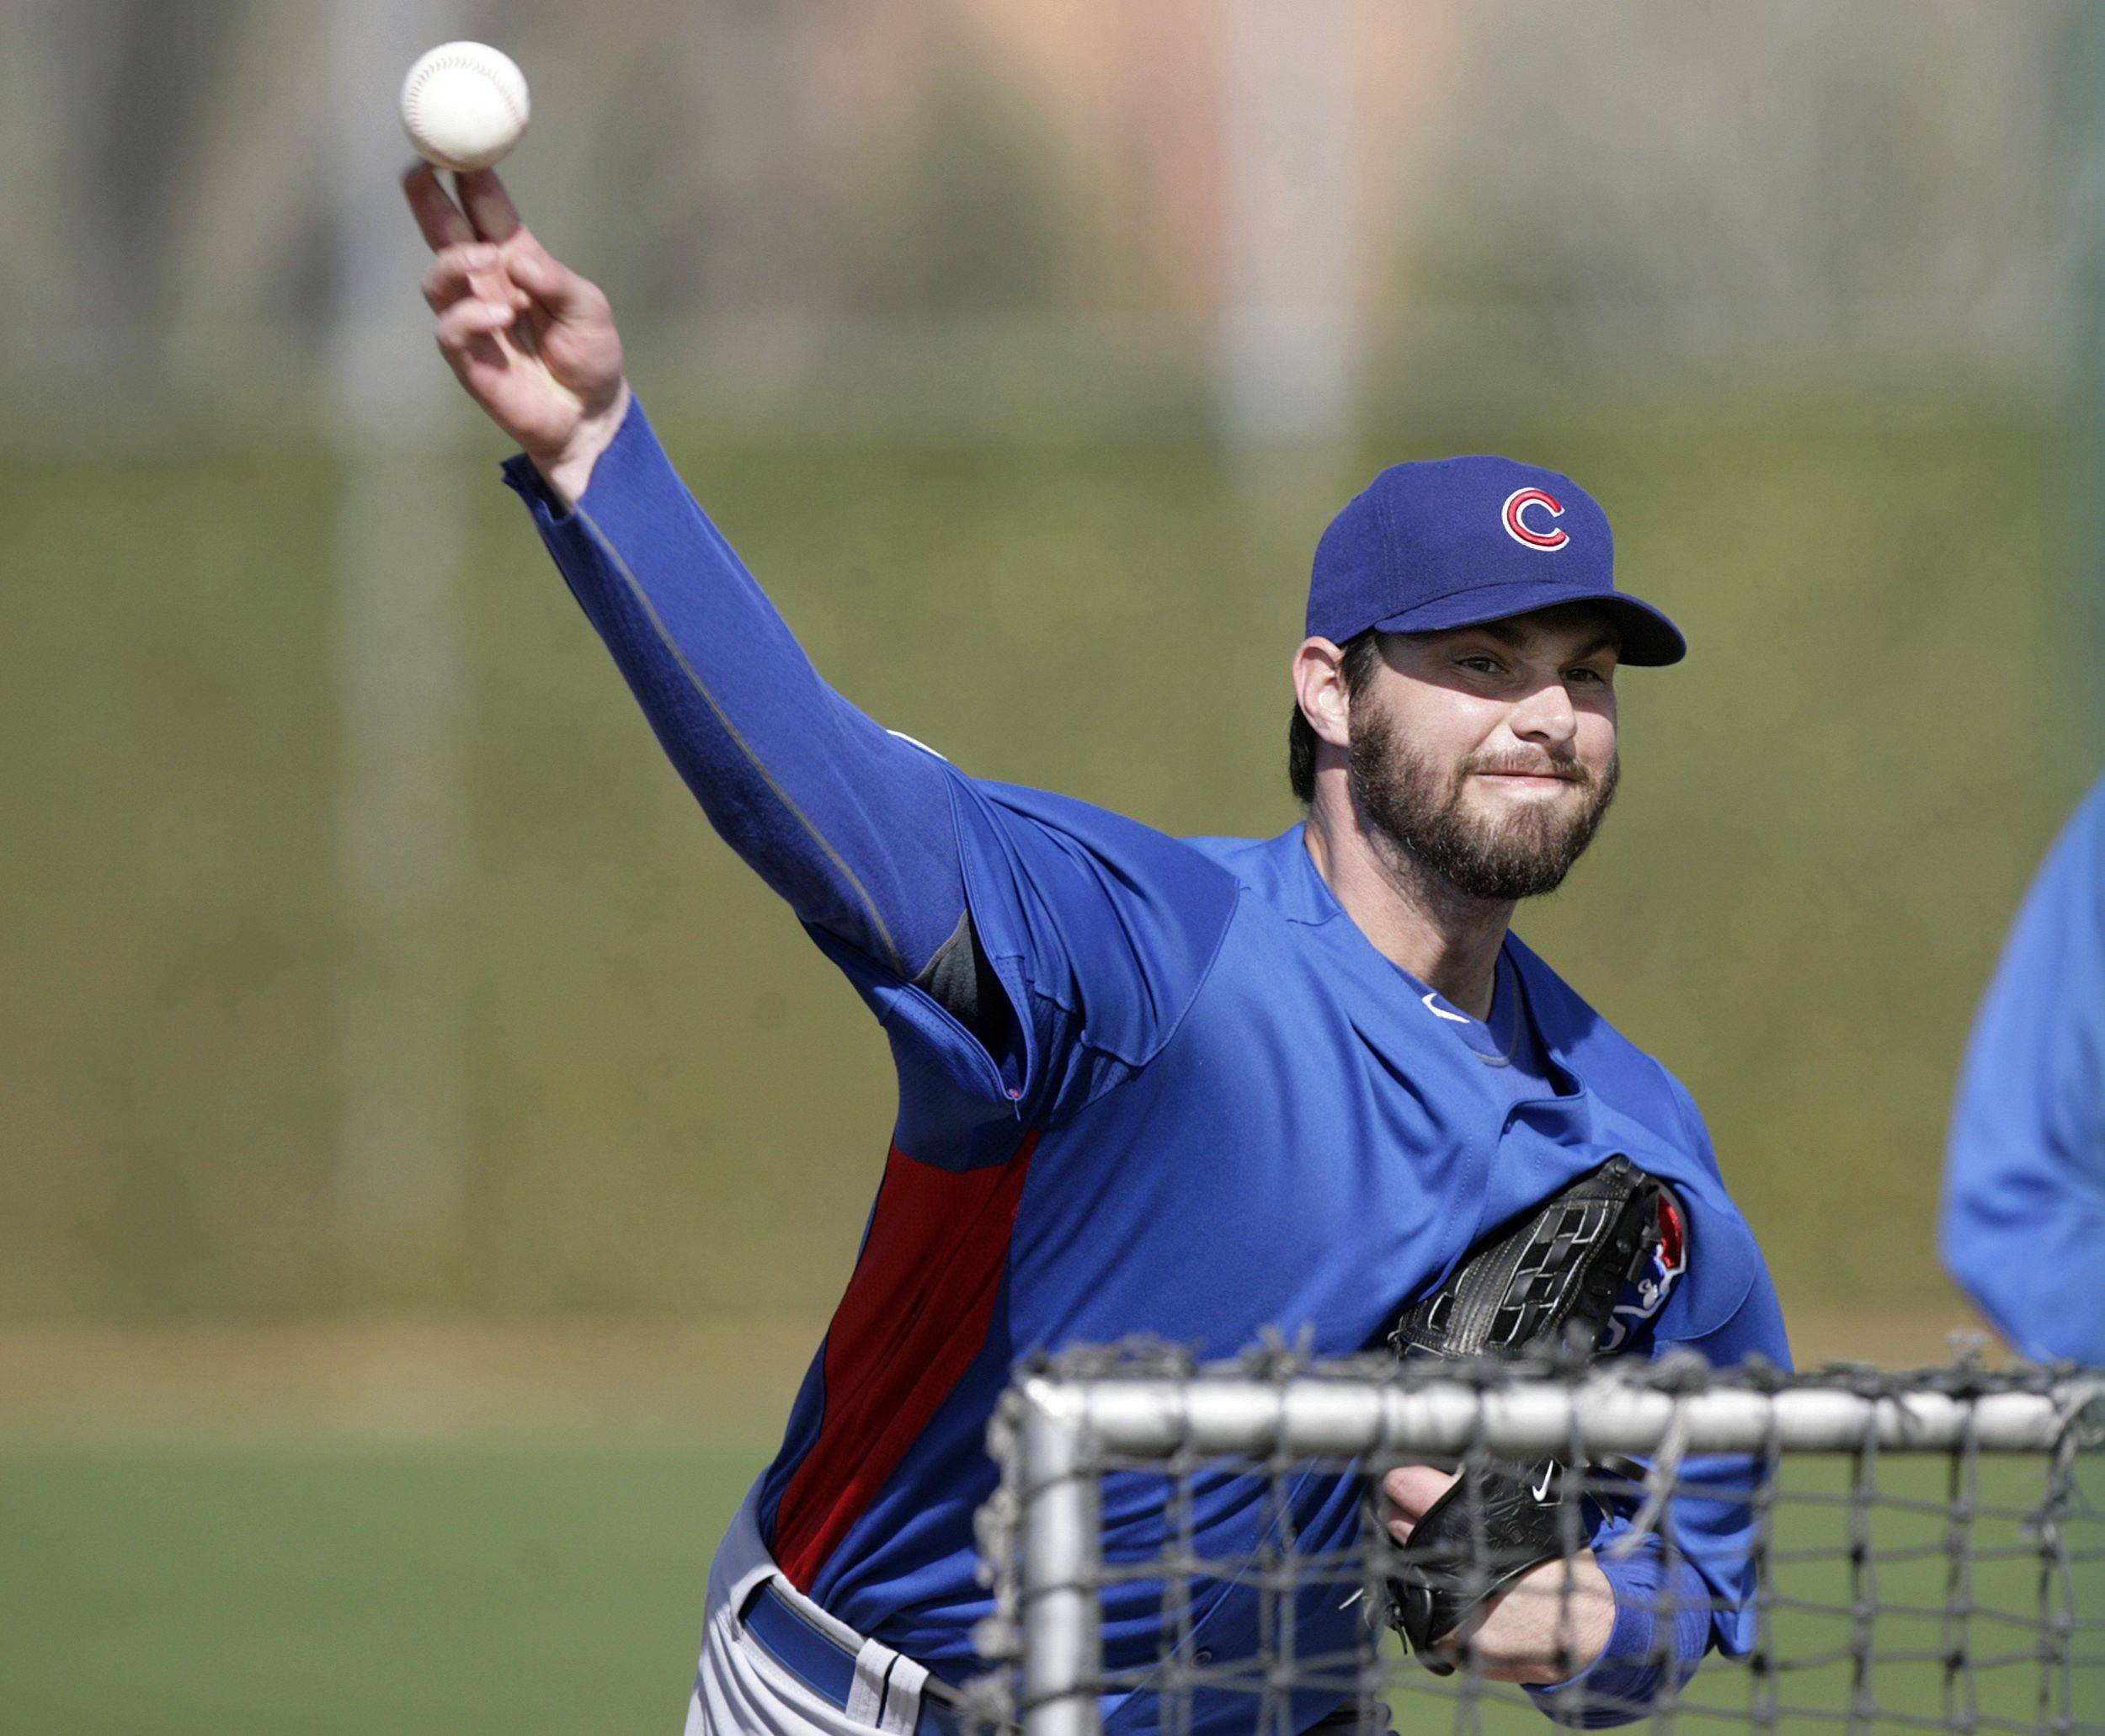 Chicago Cubs pitcher Randy Wells throws during batting practice at the team's spring training baseball facility Monday, Feb. 21, 2011, in Mesa, Ariz.